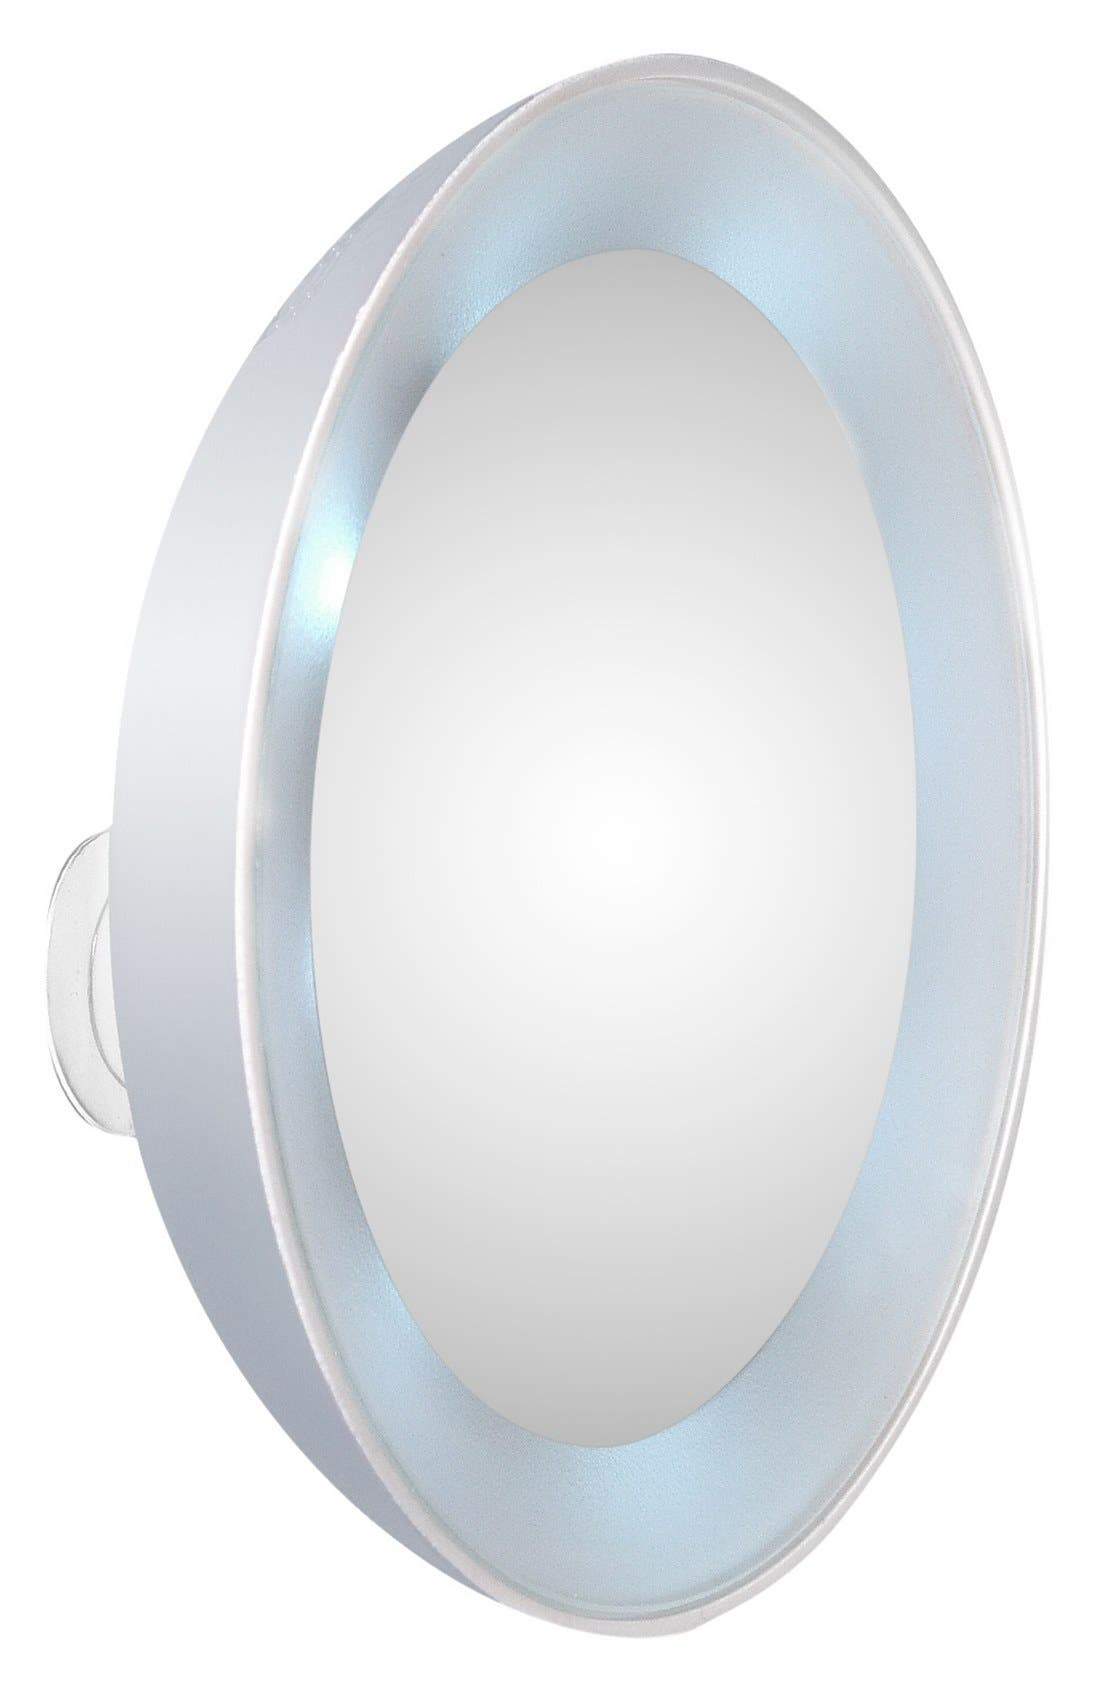 TWEEZERMAN LED 15x Lighted Mirror